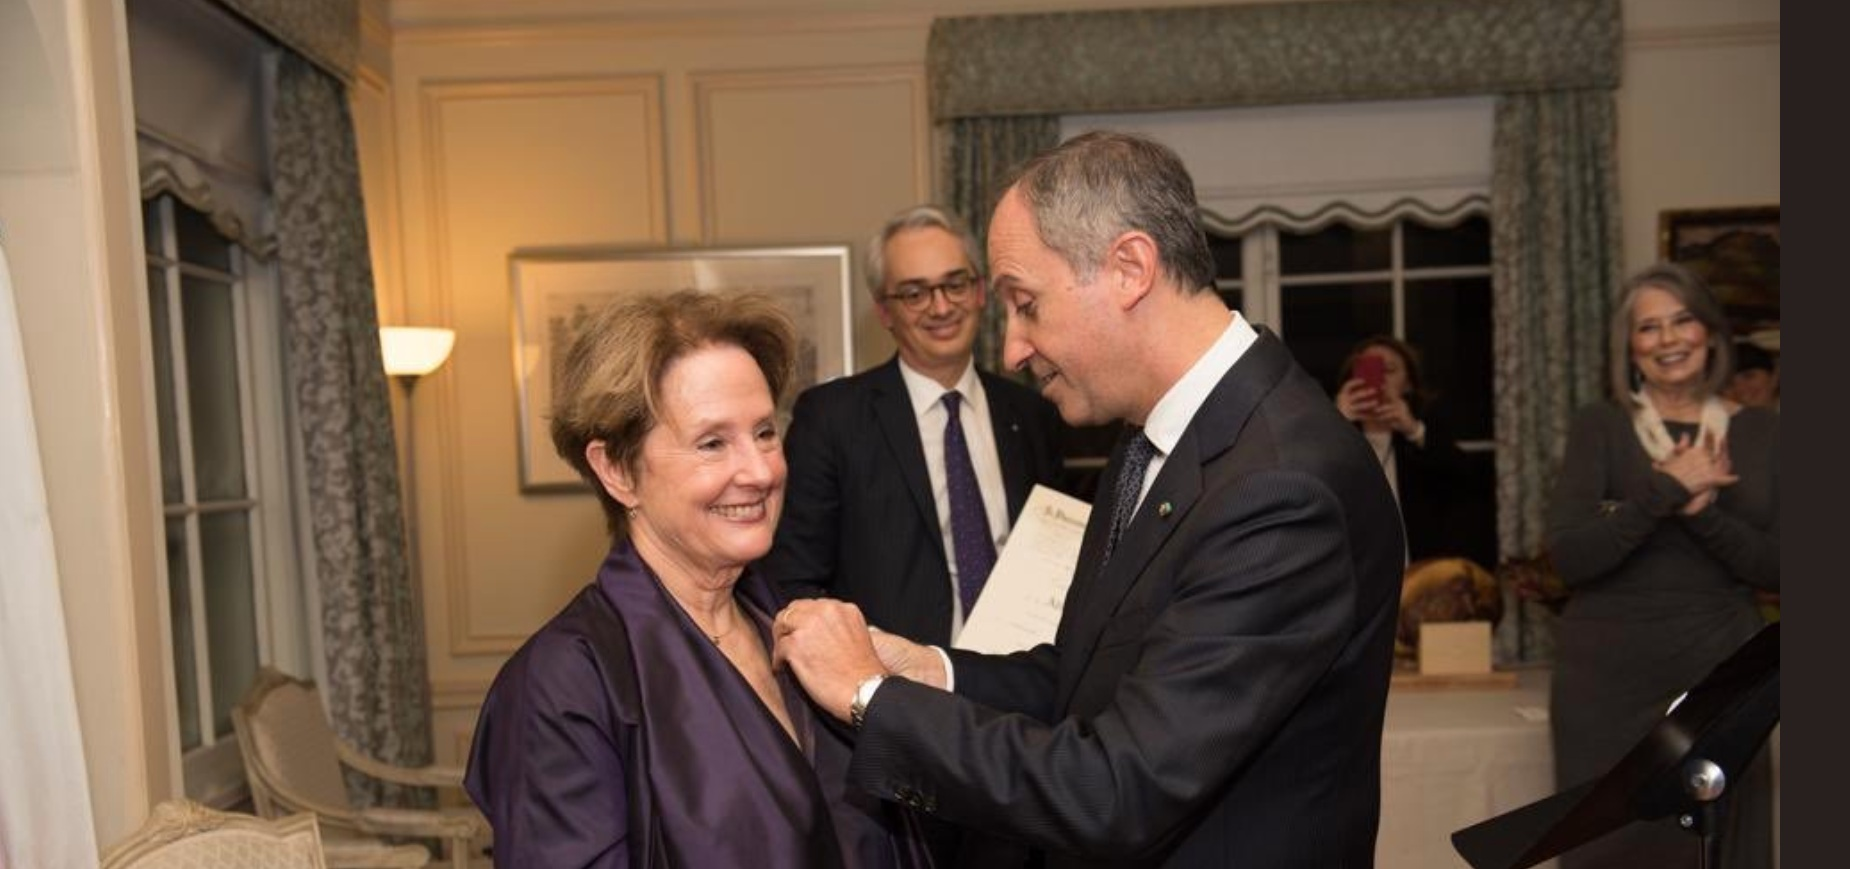 Alice Waters bEing Knighted given the honor of Cavaliere dell'Ordine al Merito della Repubblica Italiana by Italy's Ambassador to the United States, Armando Varricchio.